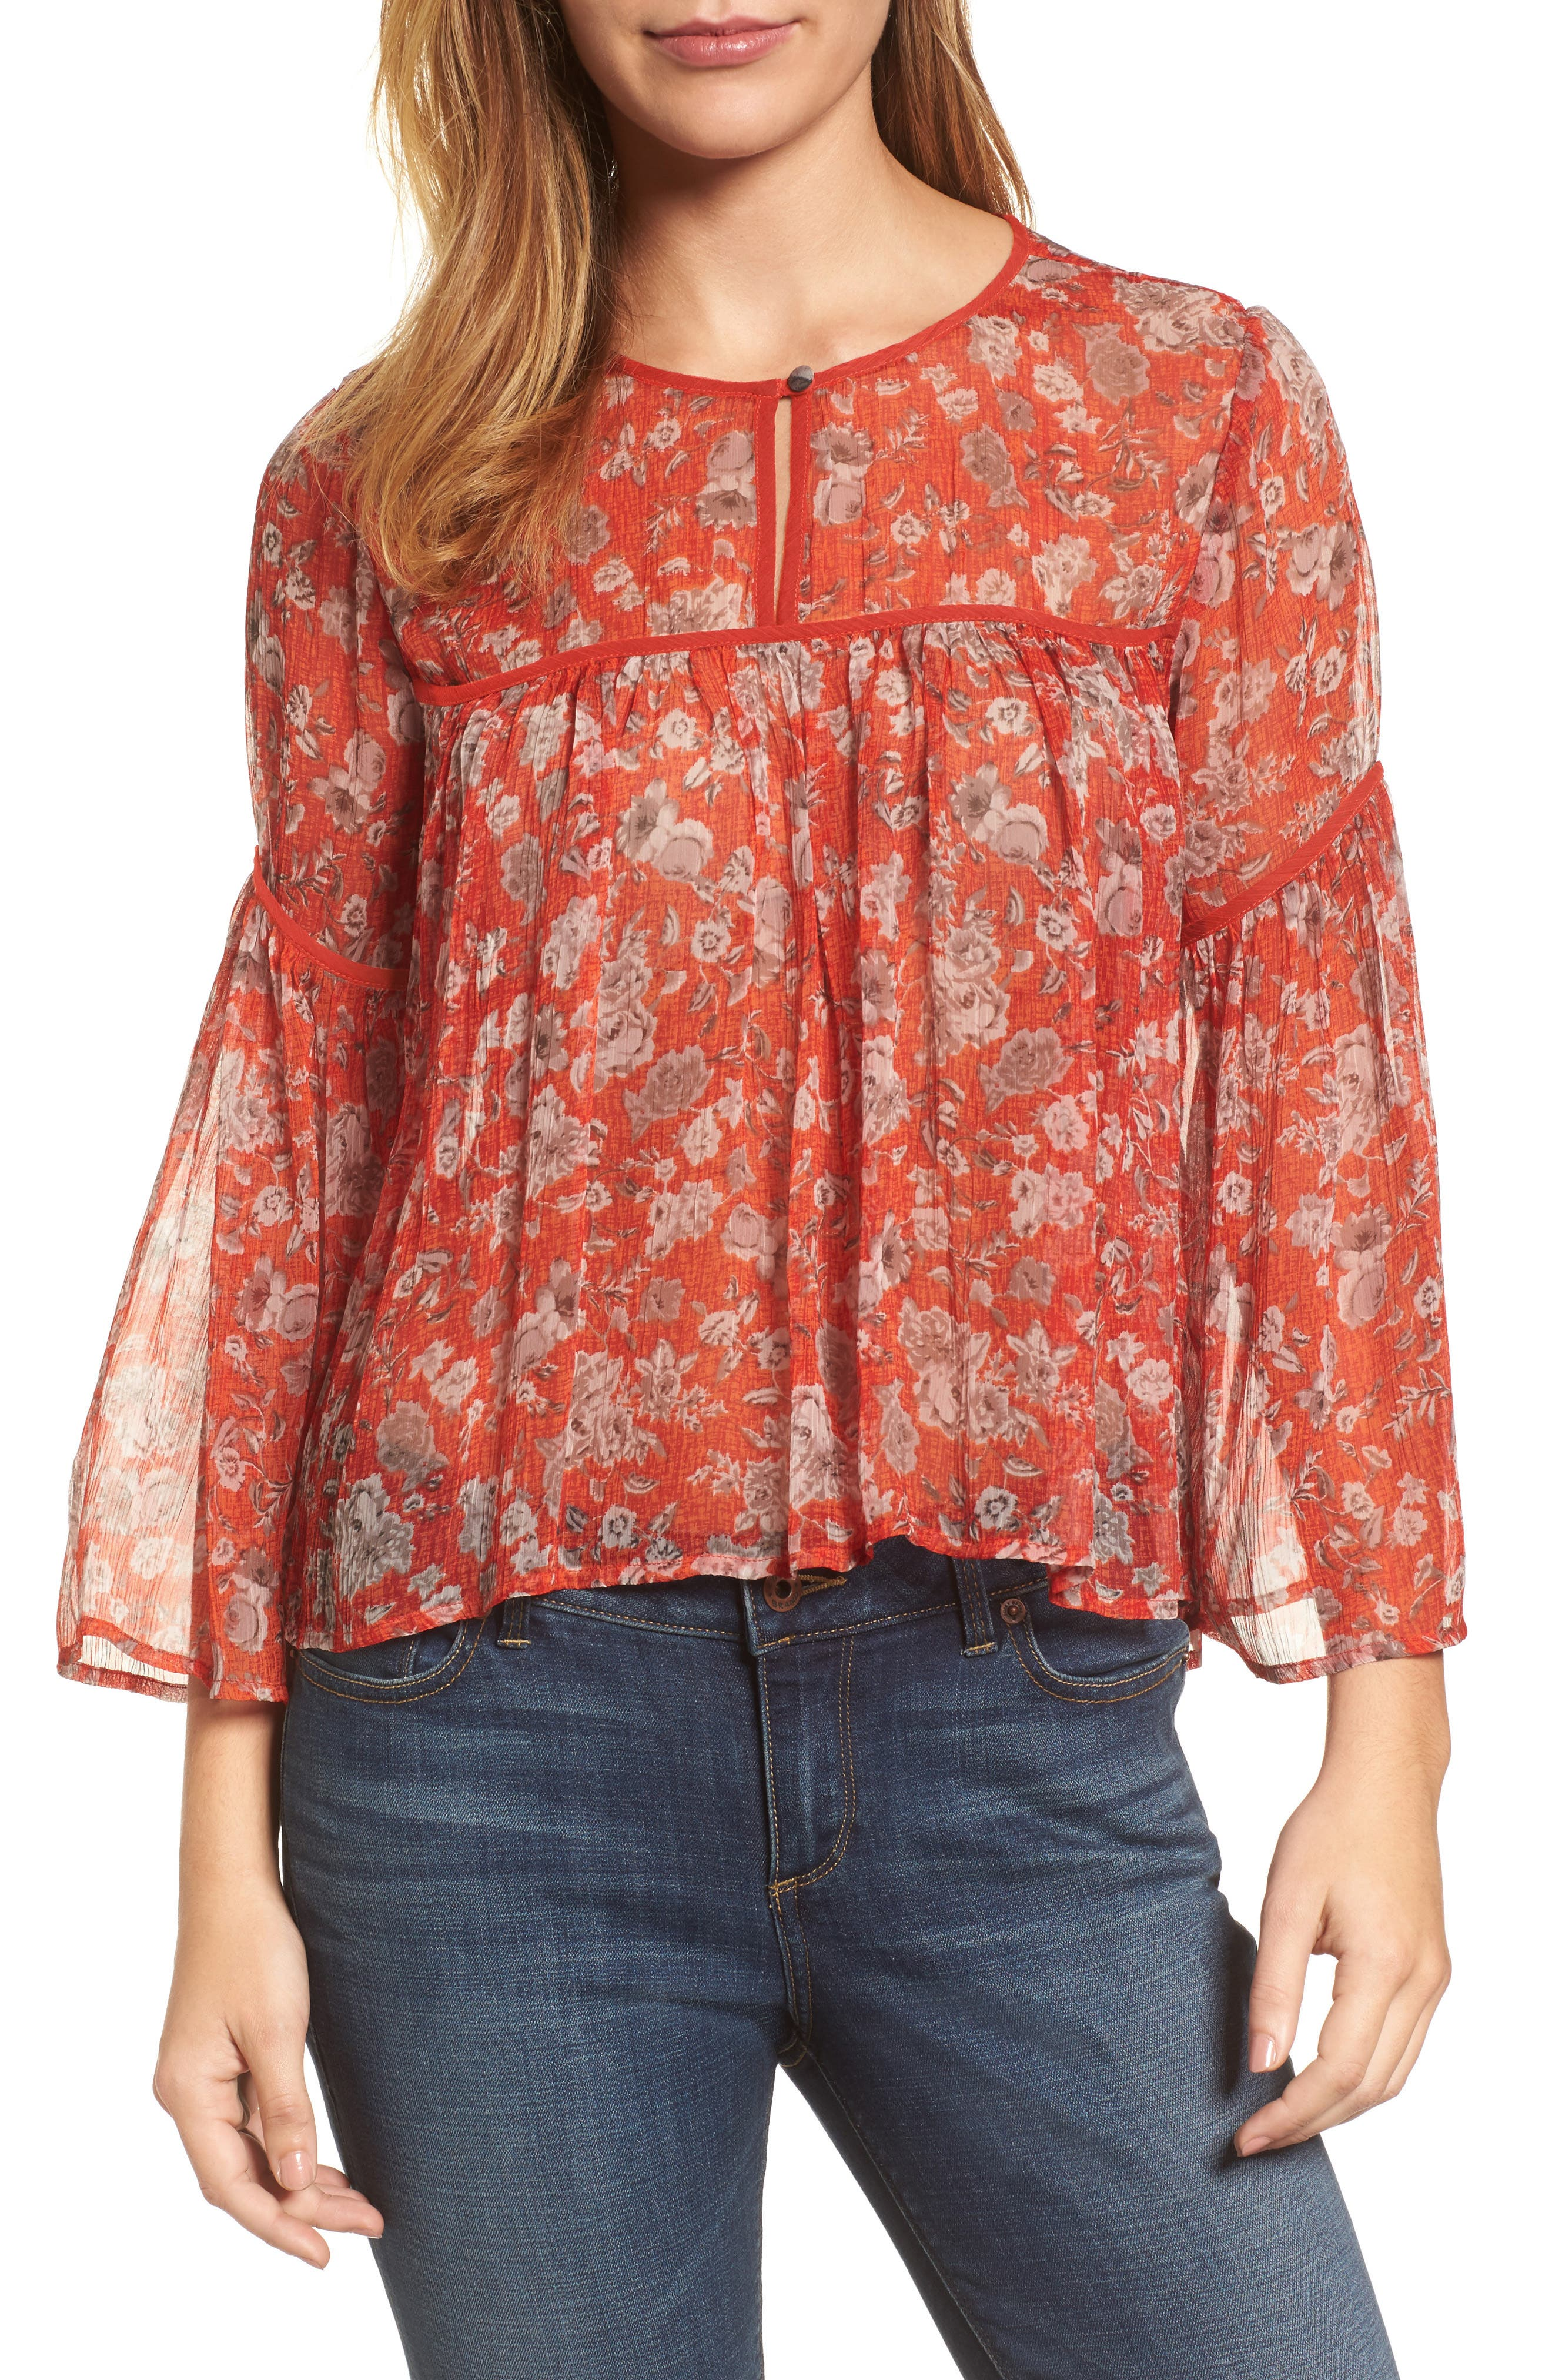 Main Image - Lucky Brand Floral Print Bell Sleeve Top